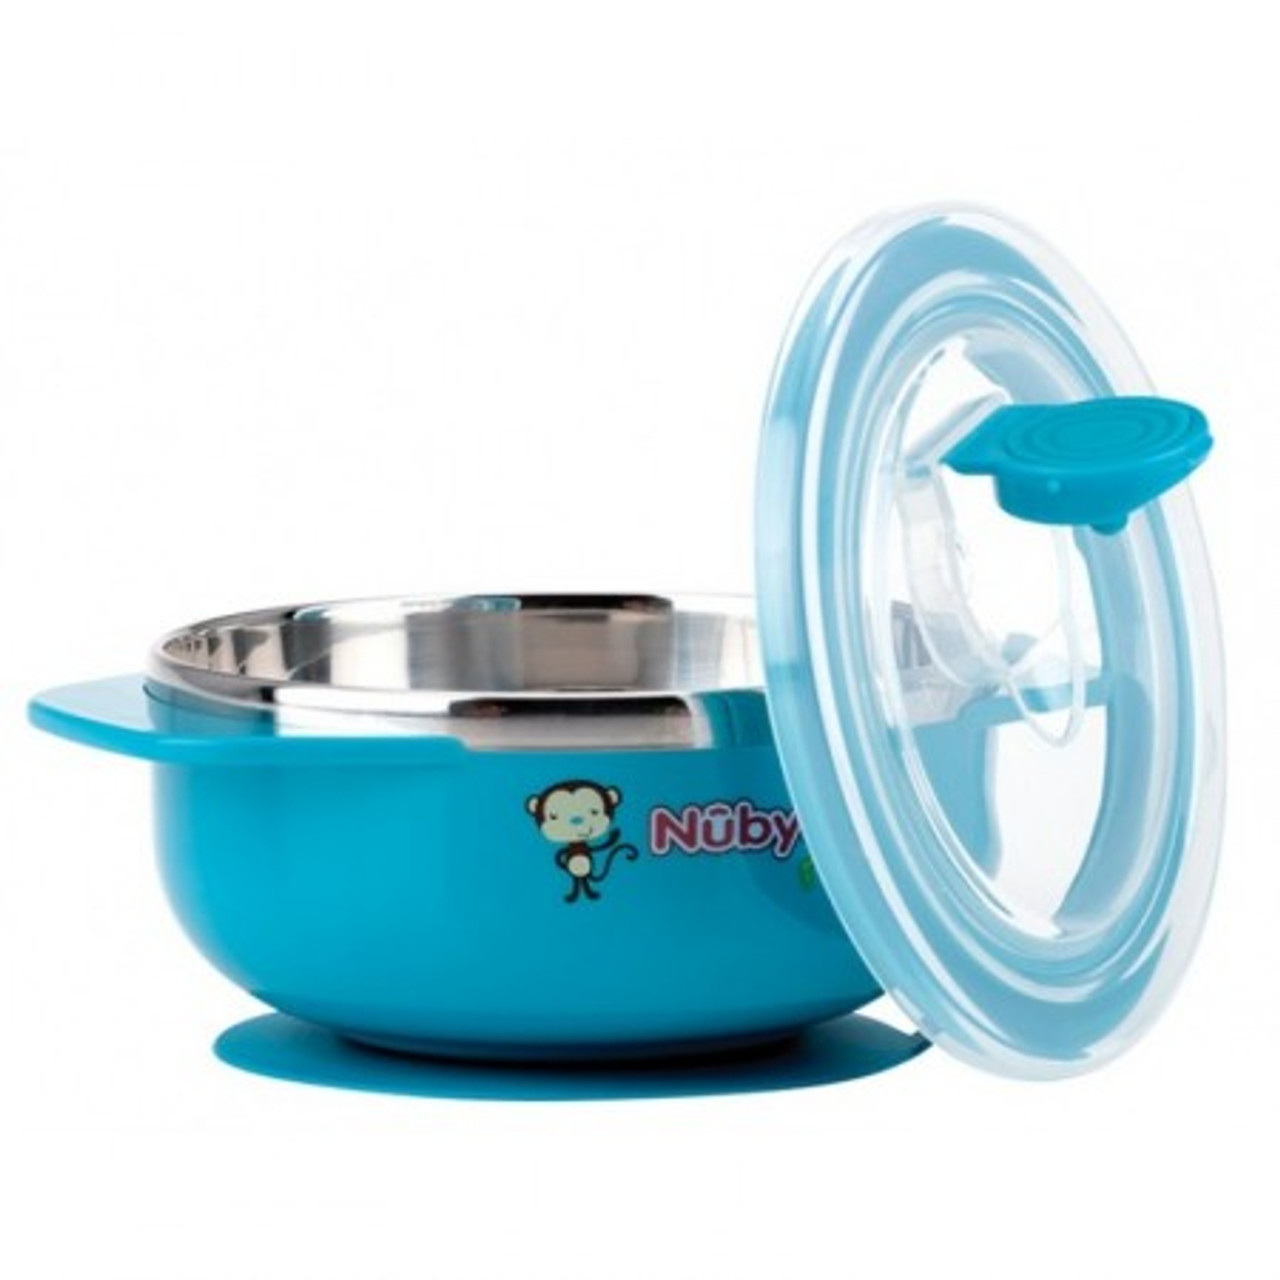 Nuby Stainless Steel Suction Bowl - BLUE